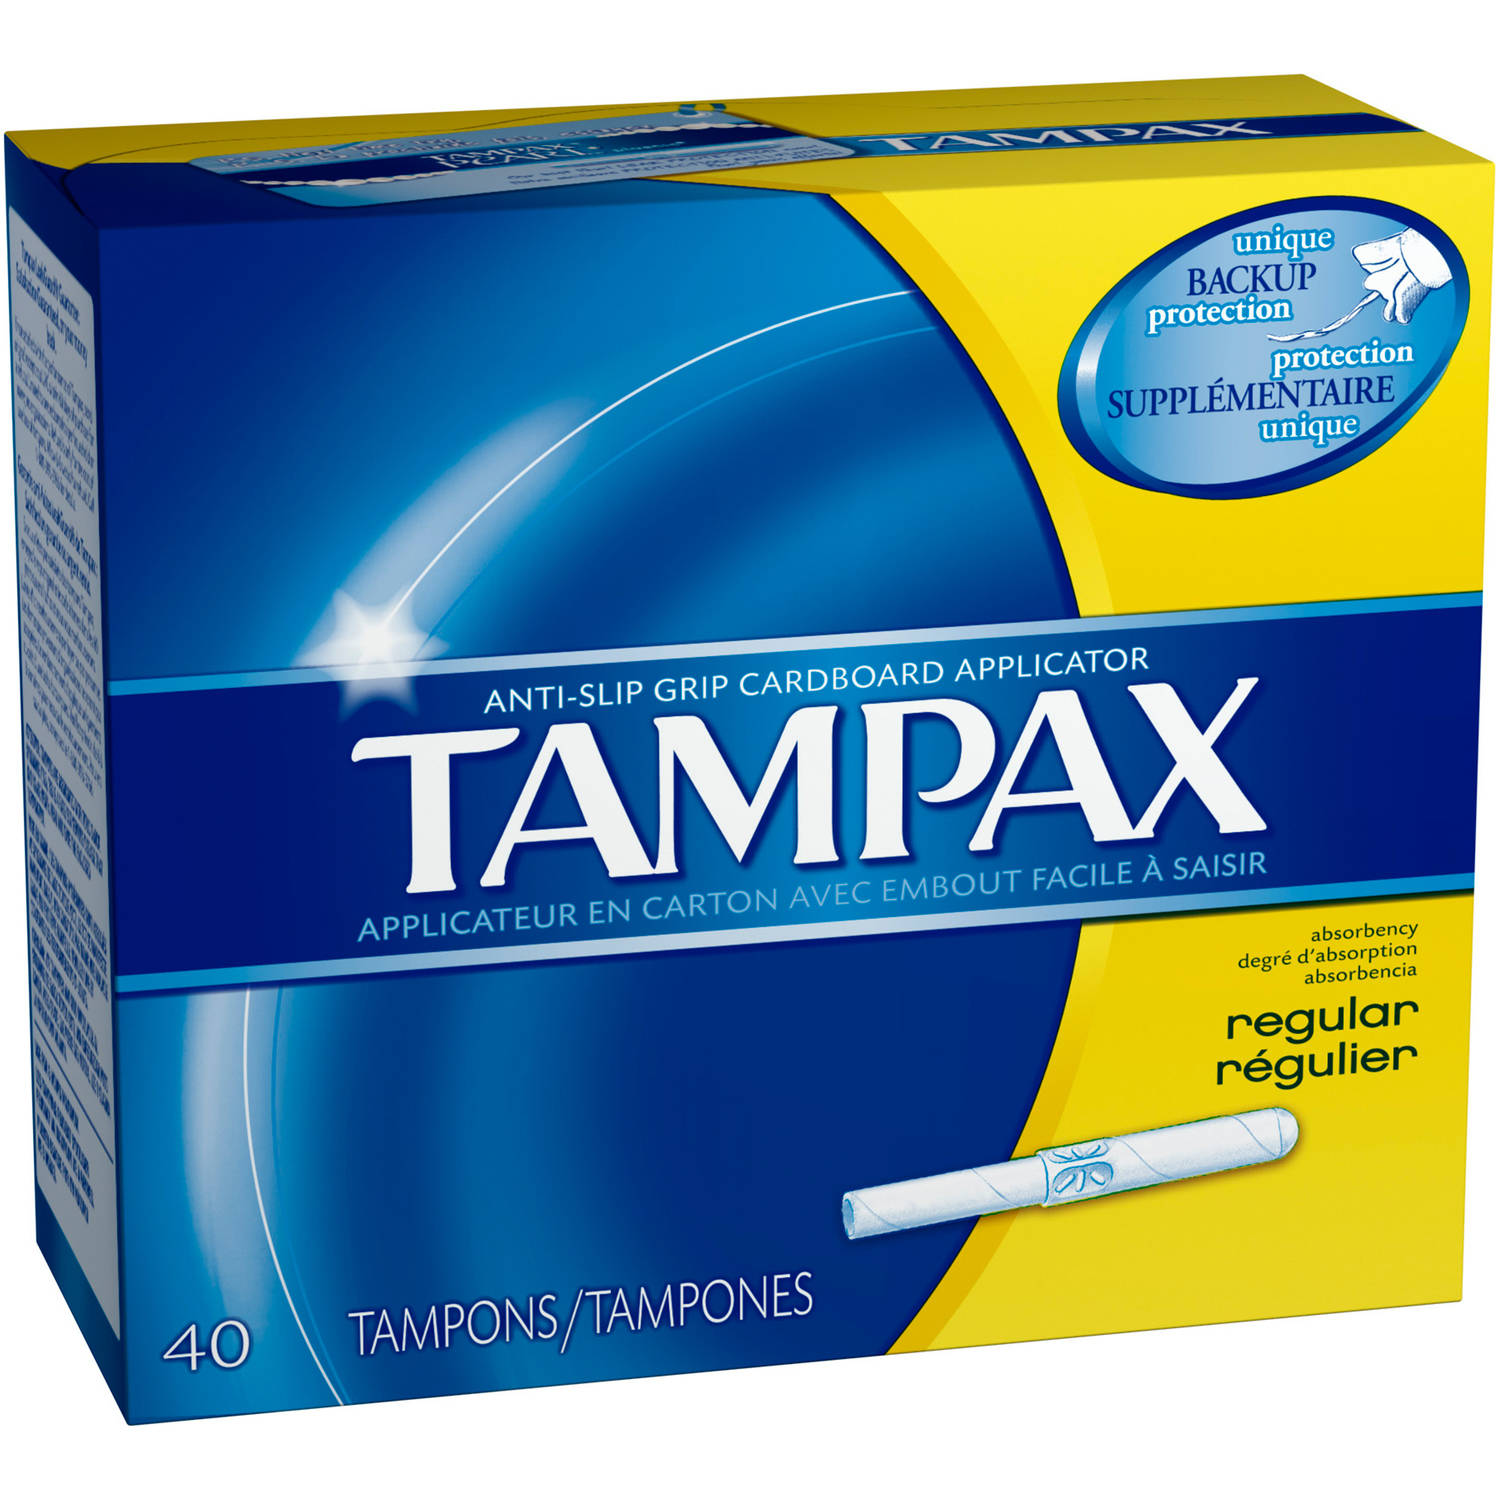 Tampax Cardboard Applicator Regular Absorbency Tampons, (Choose your Count)